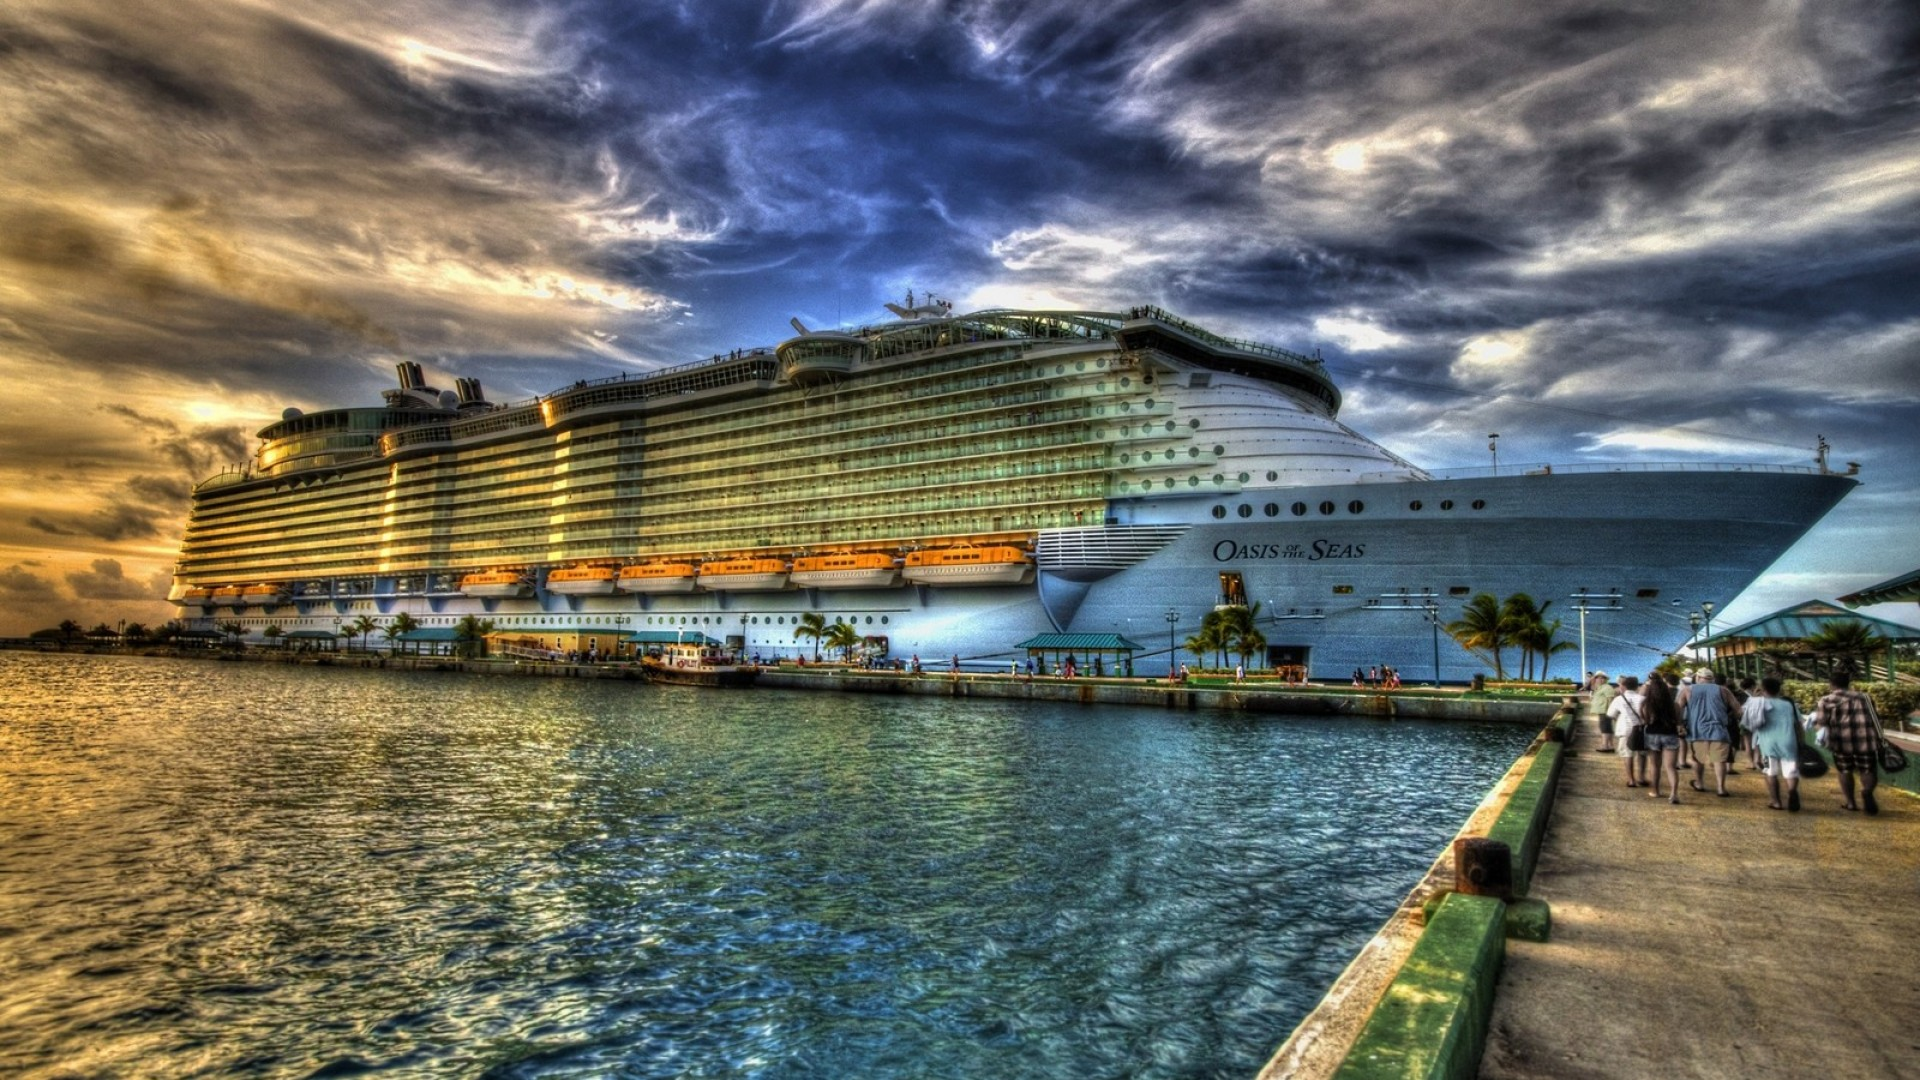 Free Download Cruise Ship Wallpapers Hd 1920x1080 For Your Desktop Mobile Tablet Explore 91 Cruise Ships Wallpapers Cruise Ships Wallpapers Cruise Ships Wallpapers 1920x1080 Hd Wallpaper Ships